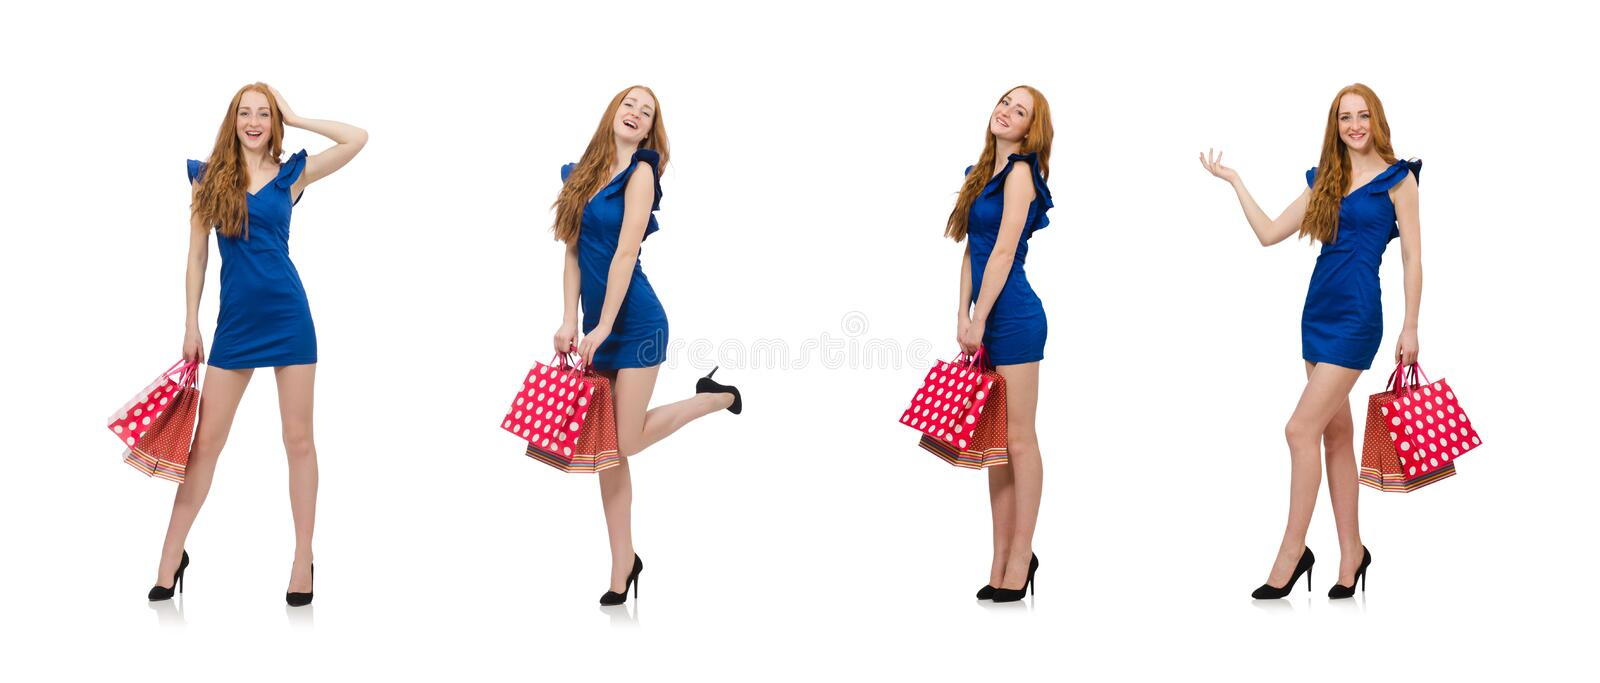 Beautiful lady in dark blue dress isolated on white royalty free stock photography